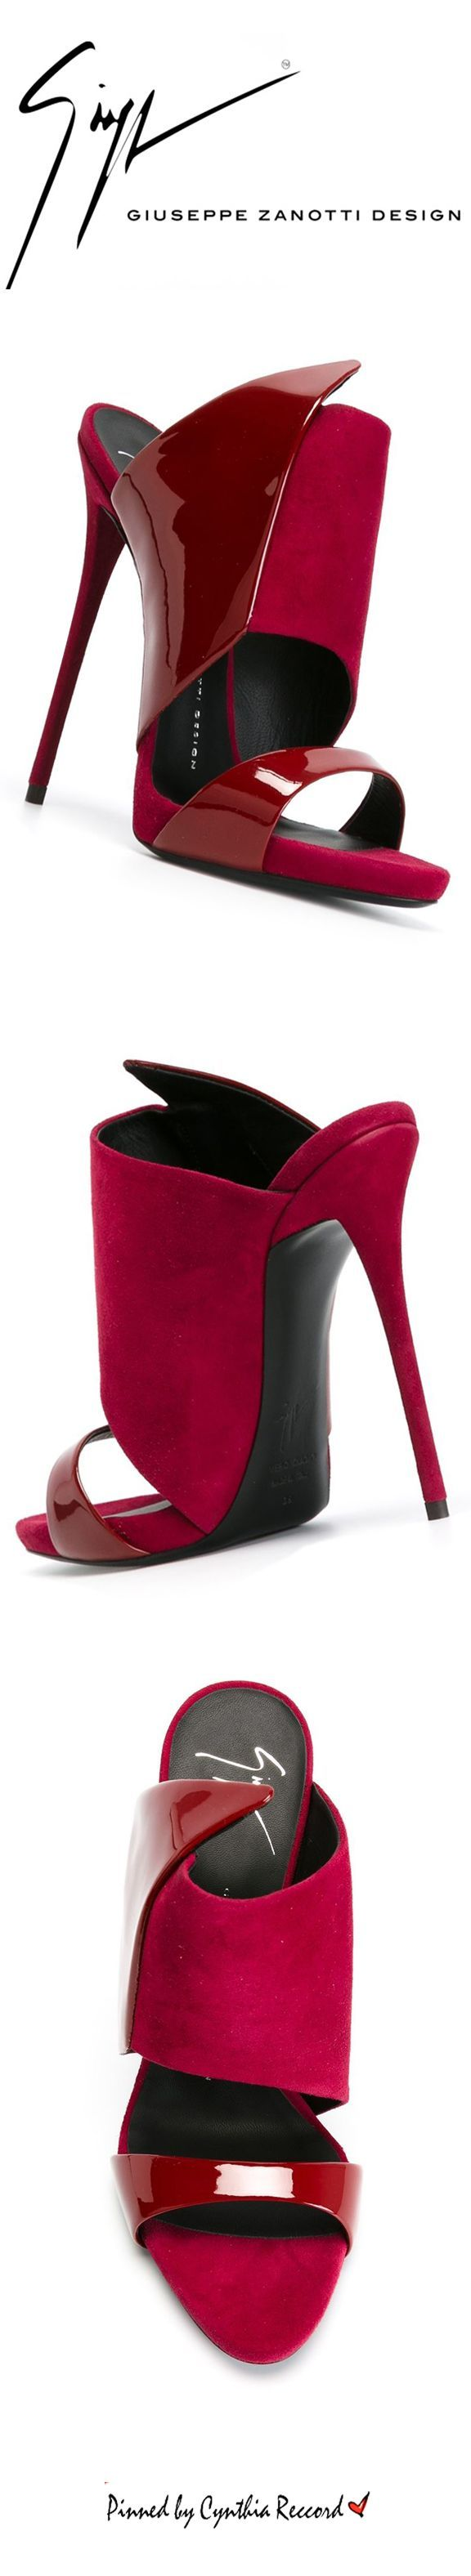 Giuseppe Zanotti Design Structured Panel Mules | FW 2015 | cynthia reccord #mules #heels #red I LOVE the color on these with <3 from JDzigner www.jdzigner.com